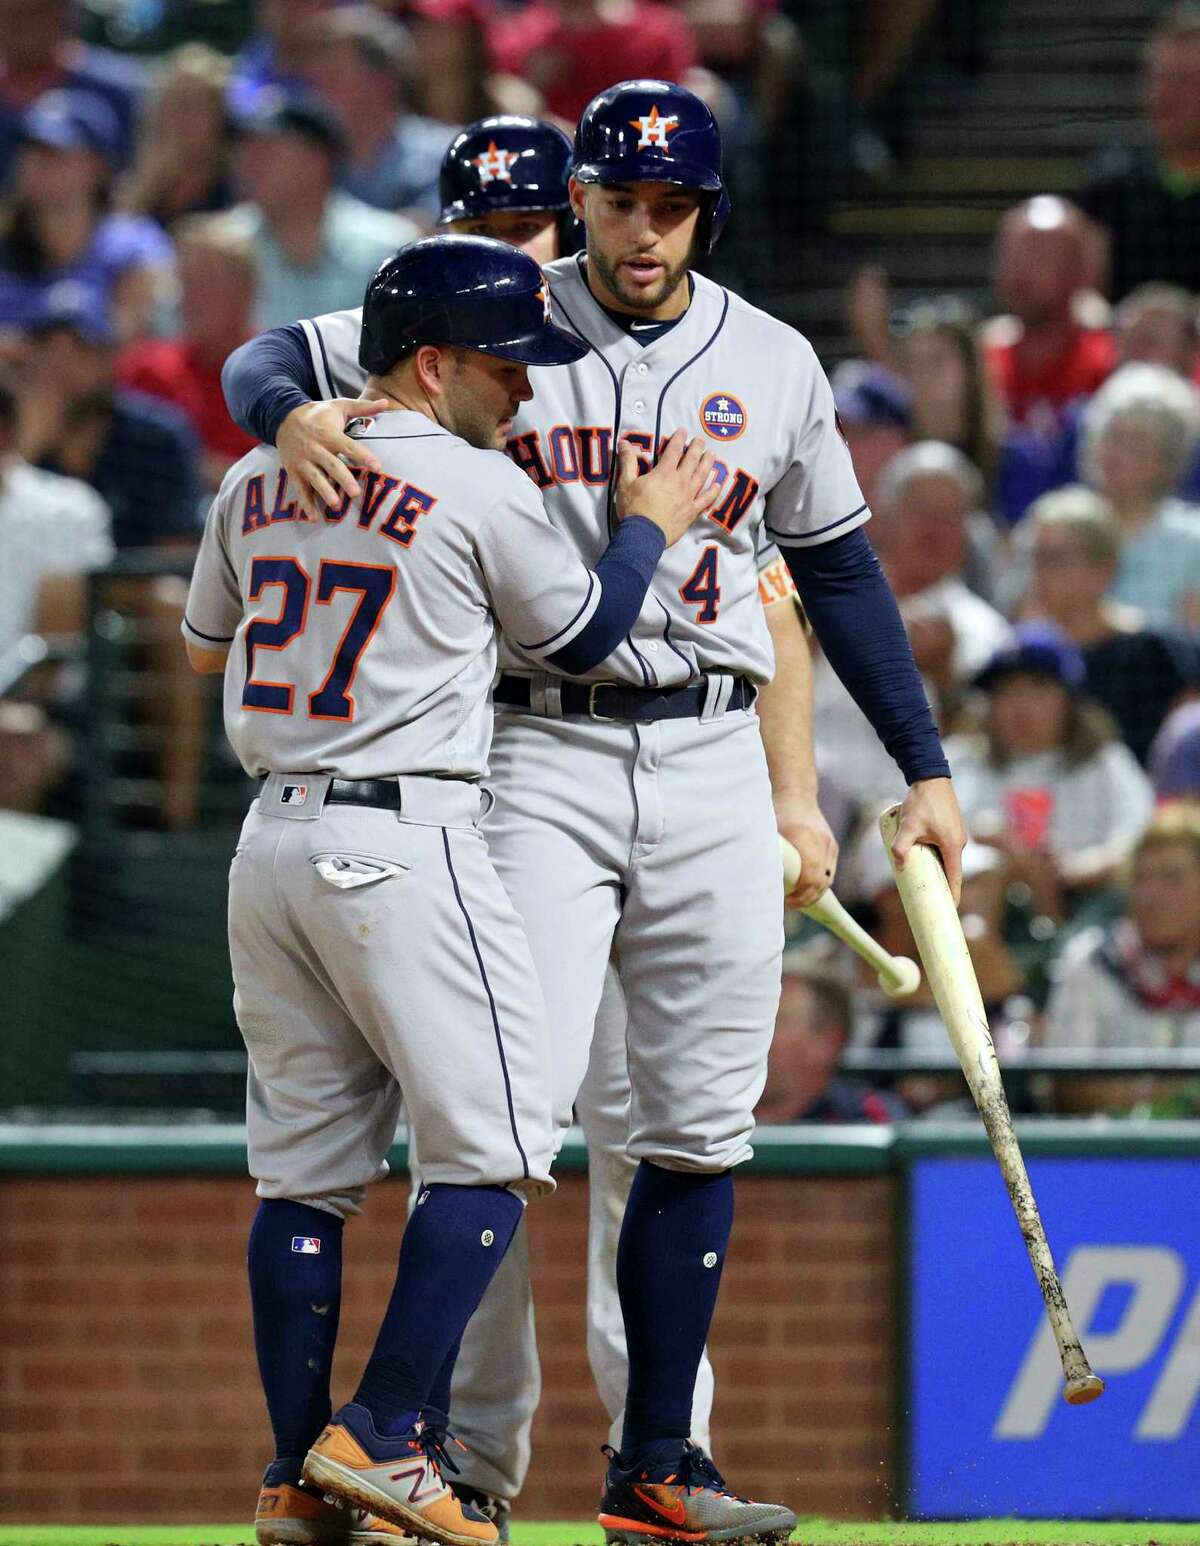 Houston Astros' Jose Altuve (27) and George Springer (4) celebrate after scoring a single by Marwin Gonzalez during the fourth inning against the Texas Rangers in a baseball game Monday, Sept. 25, 2017, in Arlington Texas. (AP Photo/Richard W. Rodriguez)